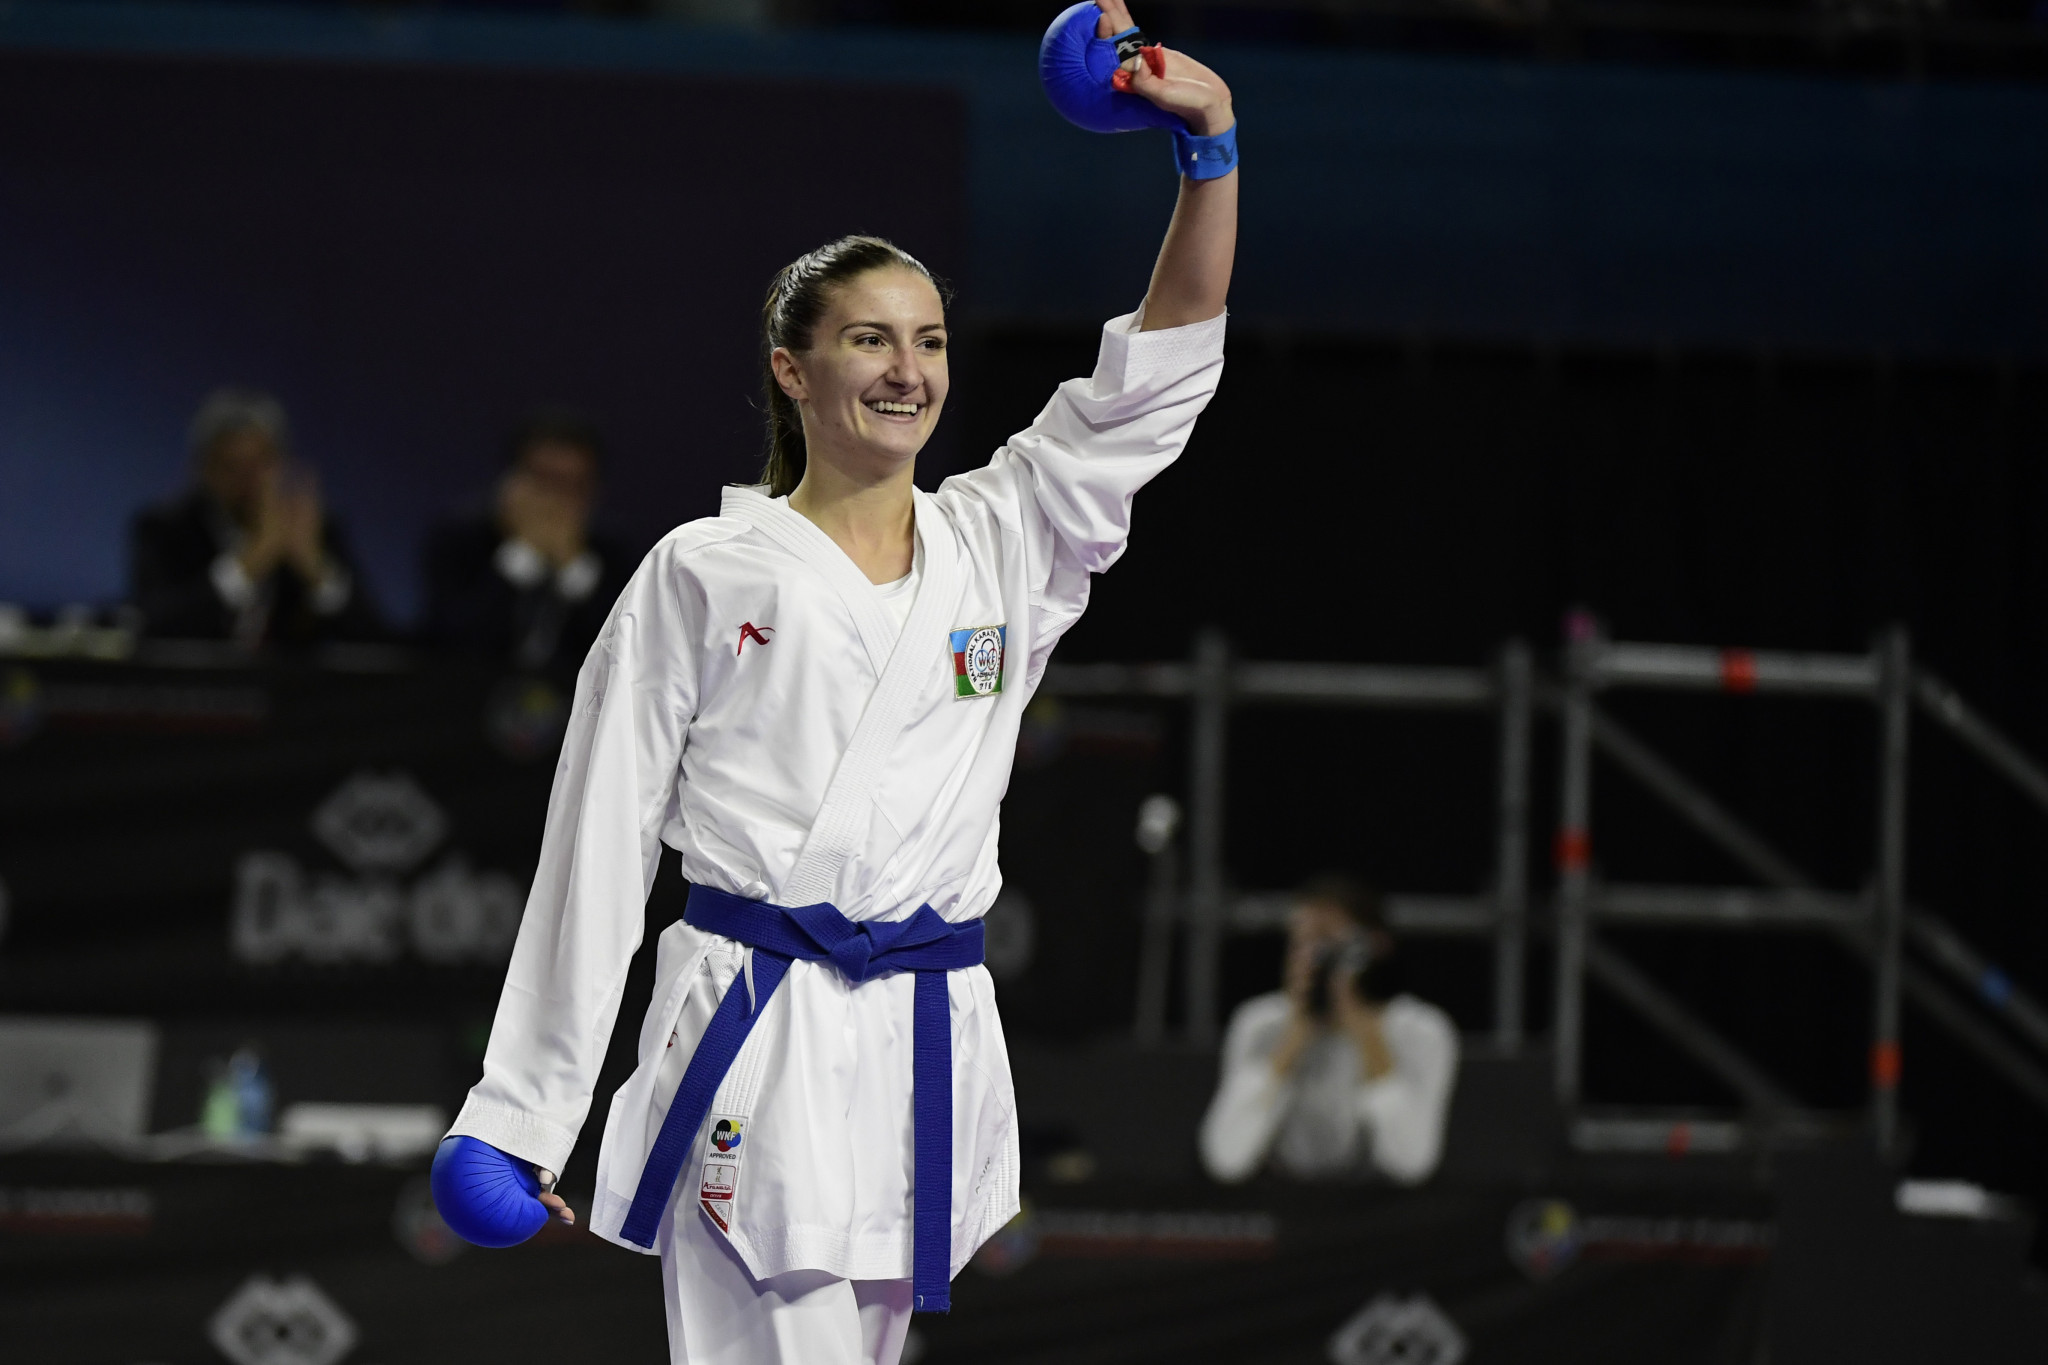 Azerbaijan's world champion Irina Zaretska is set to compete at the Karate 1-Premier League in Istanbul ©Getty Images